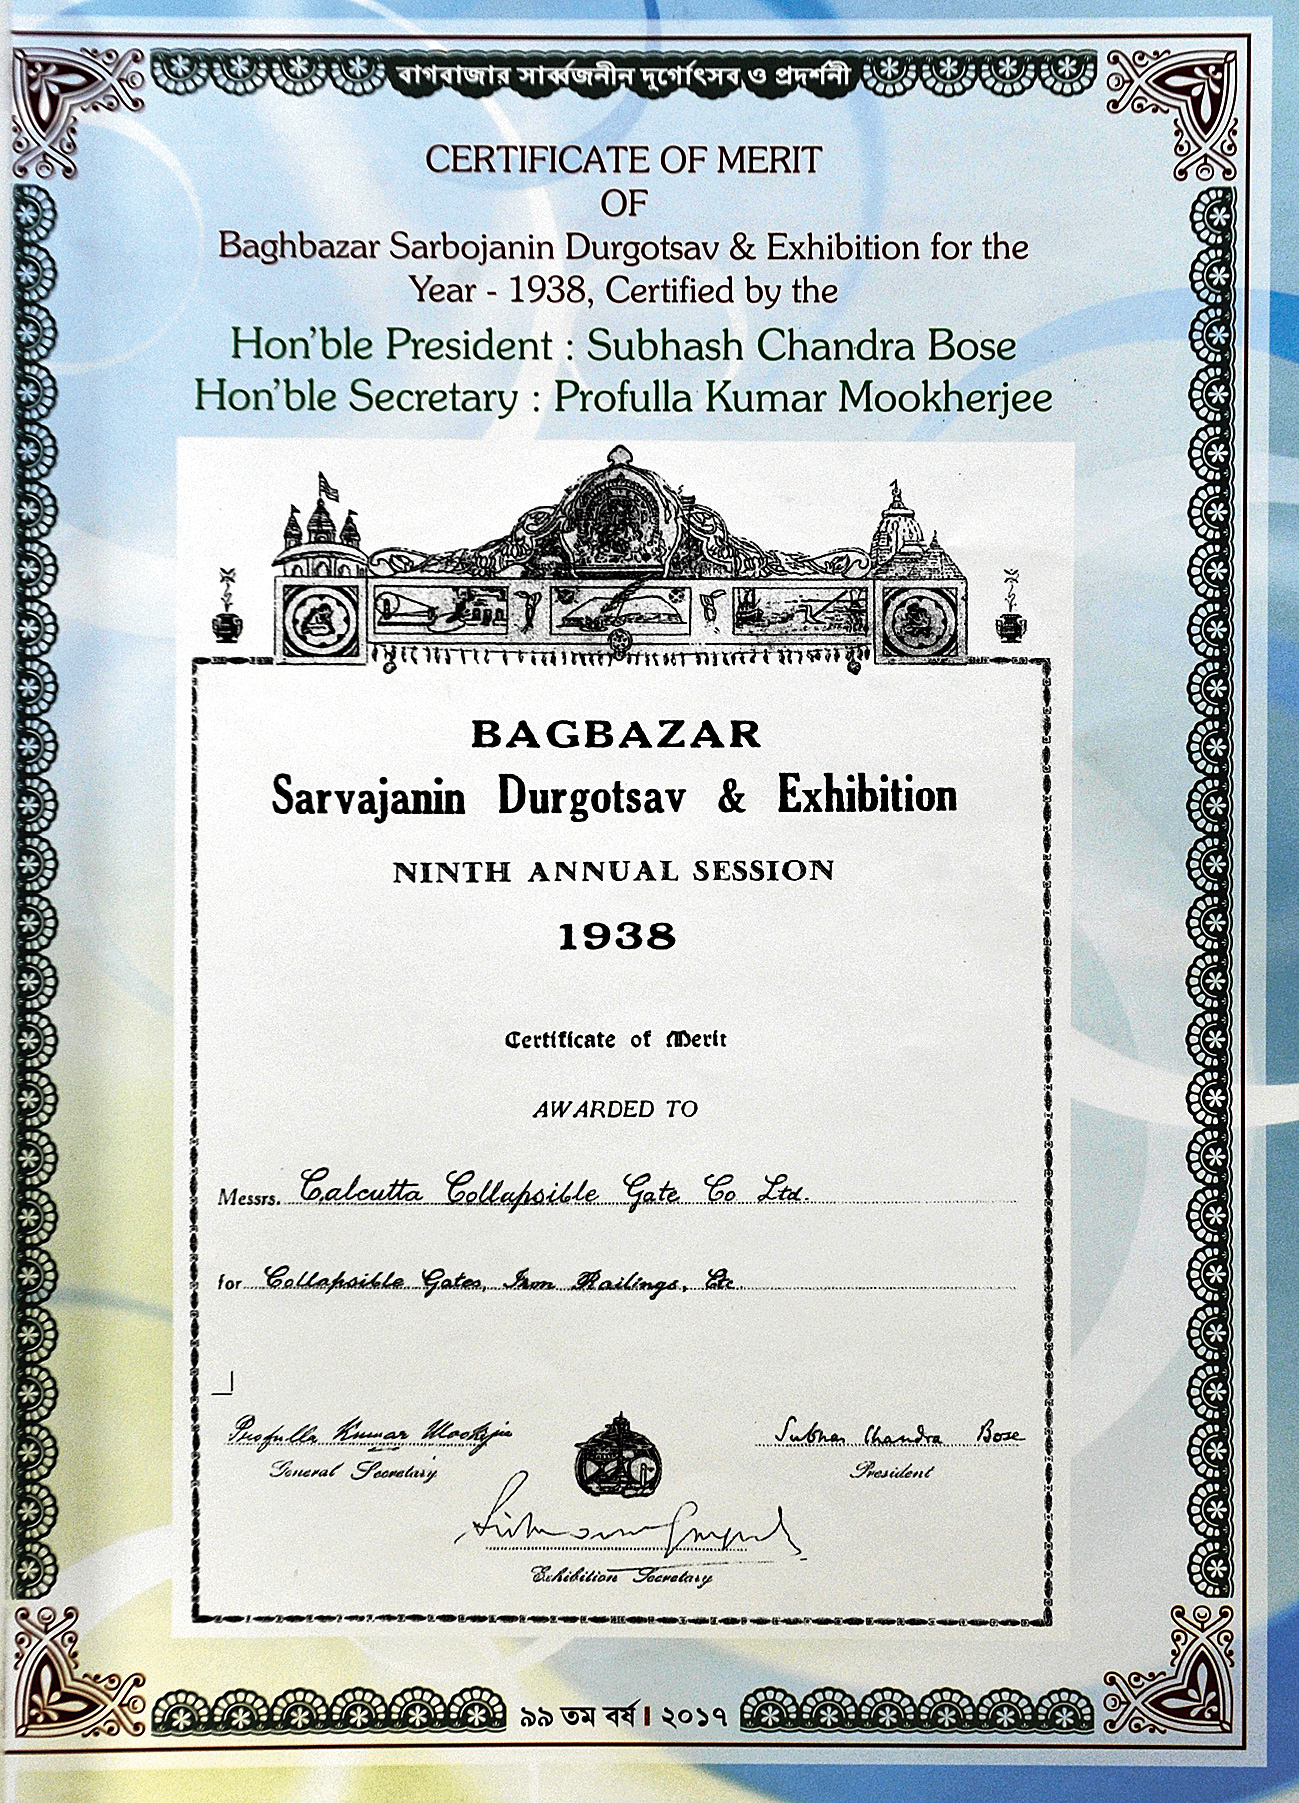 A certificate of merit issued in 1938 by Bagbazar Sarvajanin Durgotsav & Exhibition. The north Calcutta puja had started in 1919 under a different name.